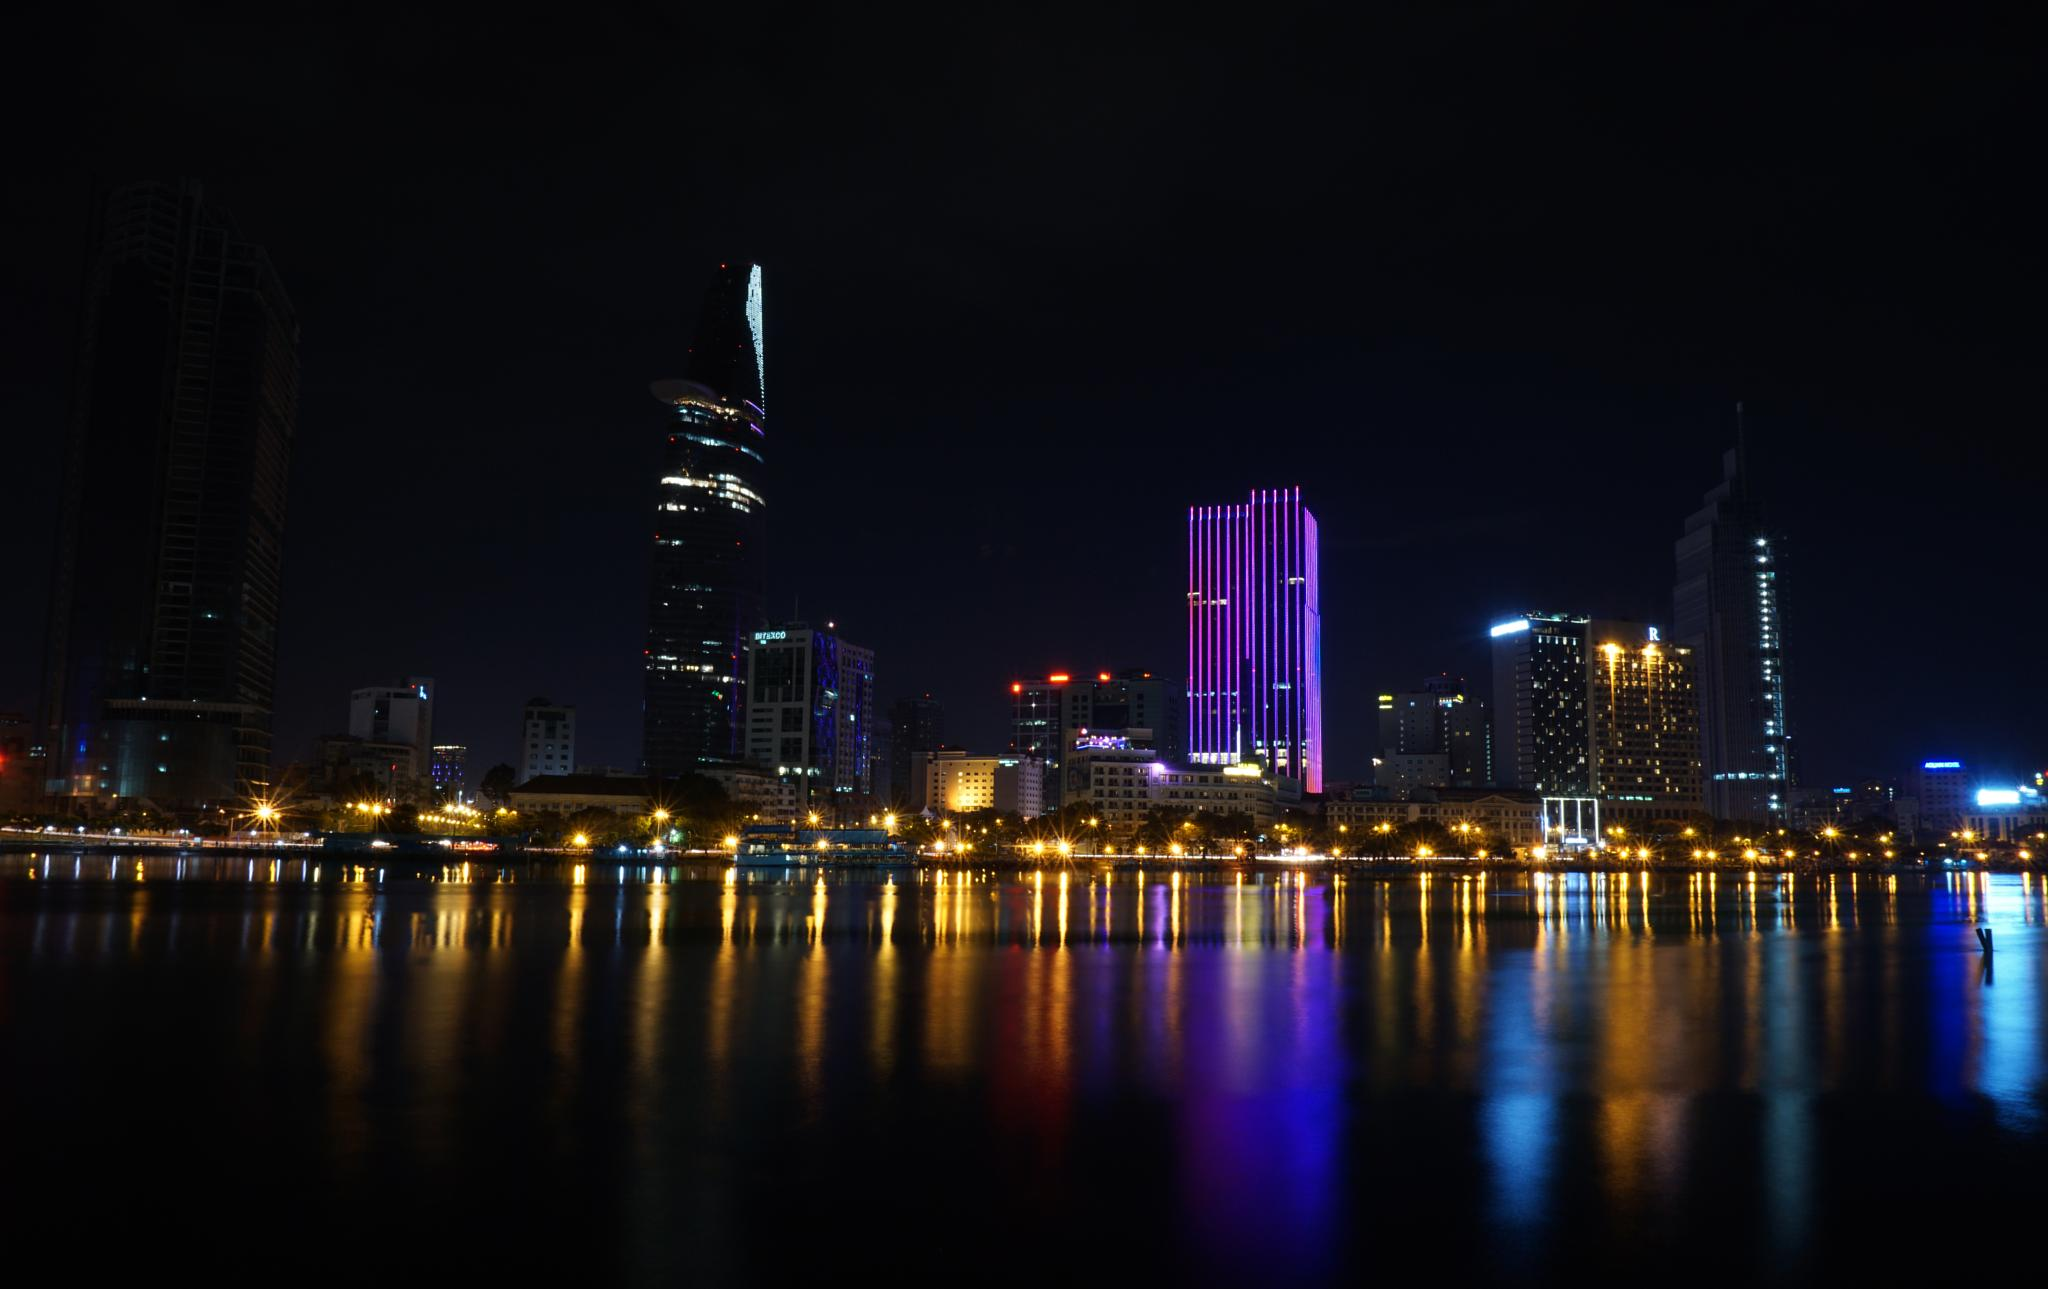 Another view :) by Dung Tuan Pham